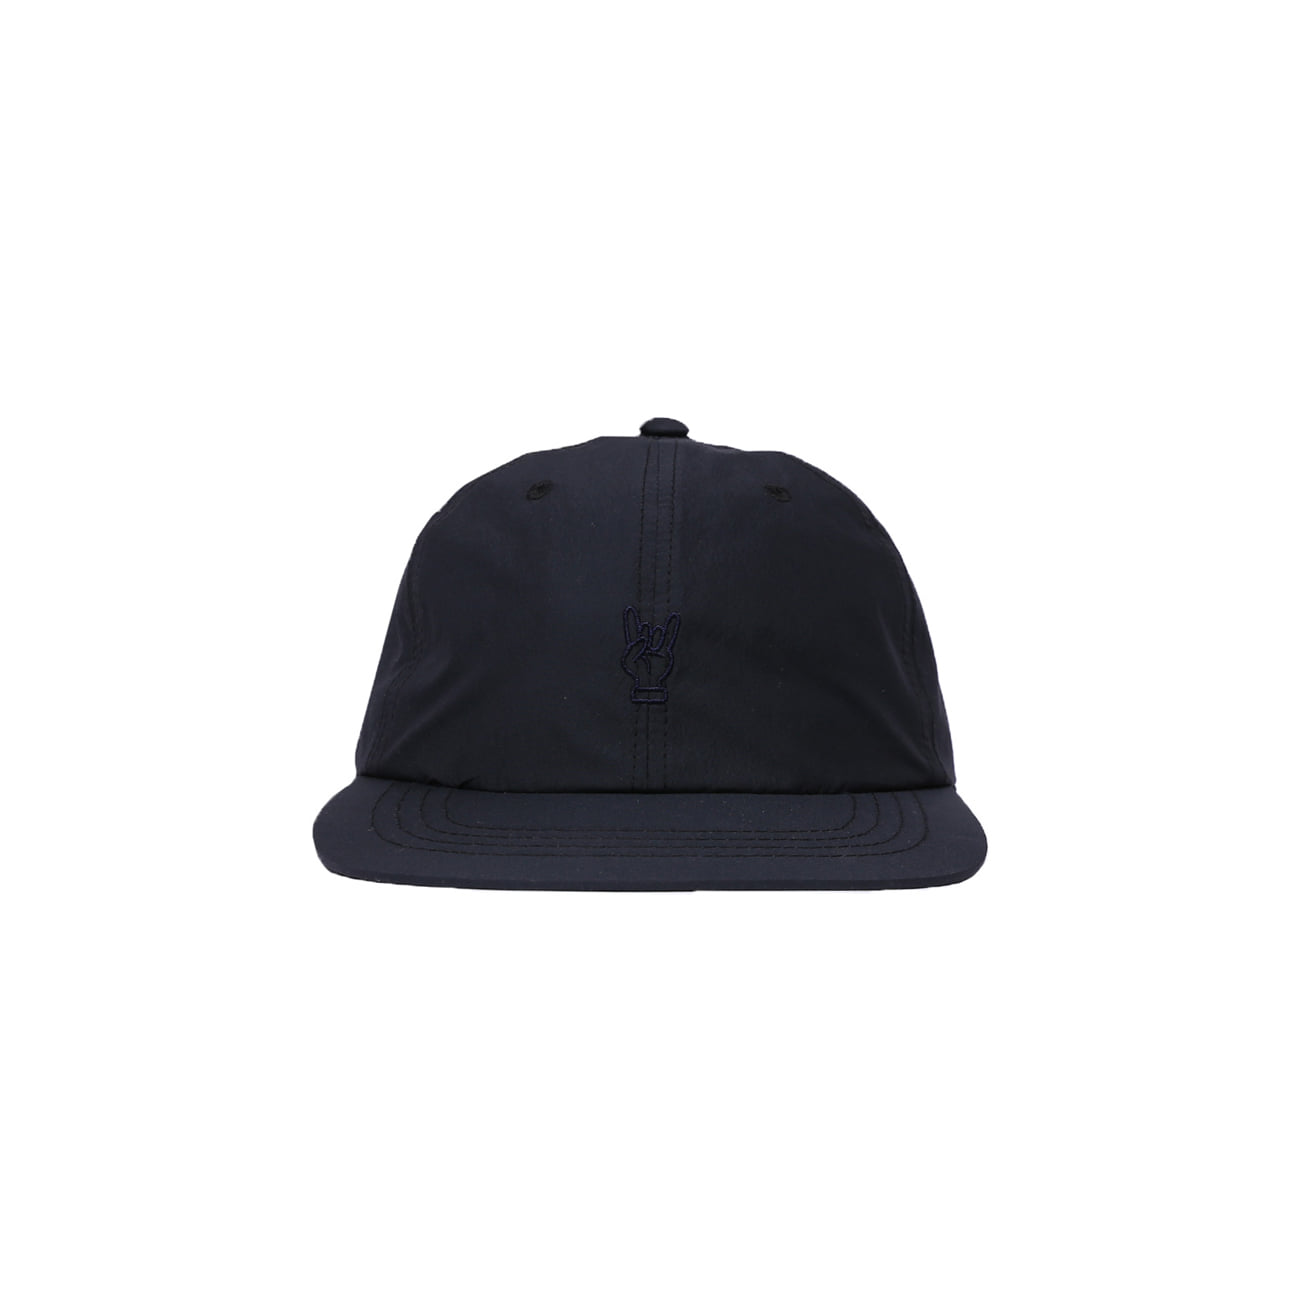 6Pannel Ball Cap